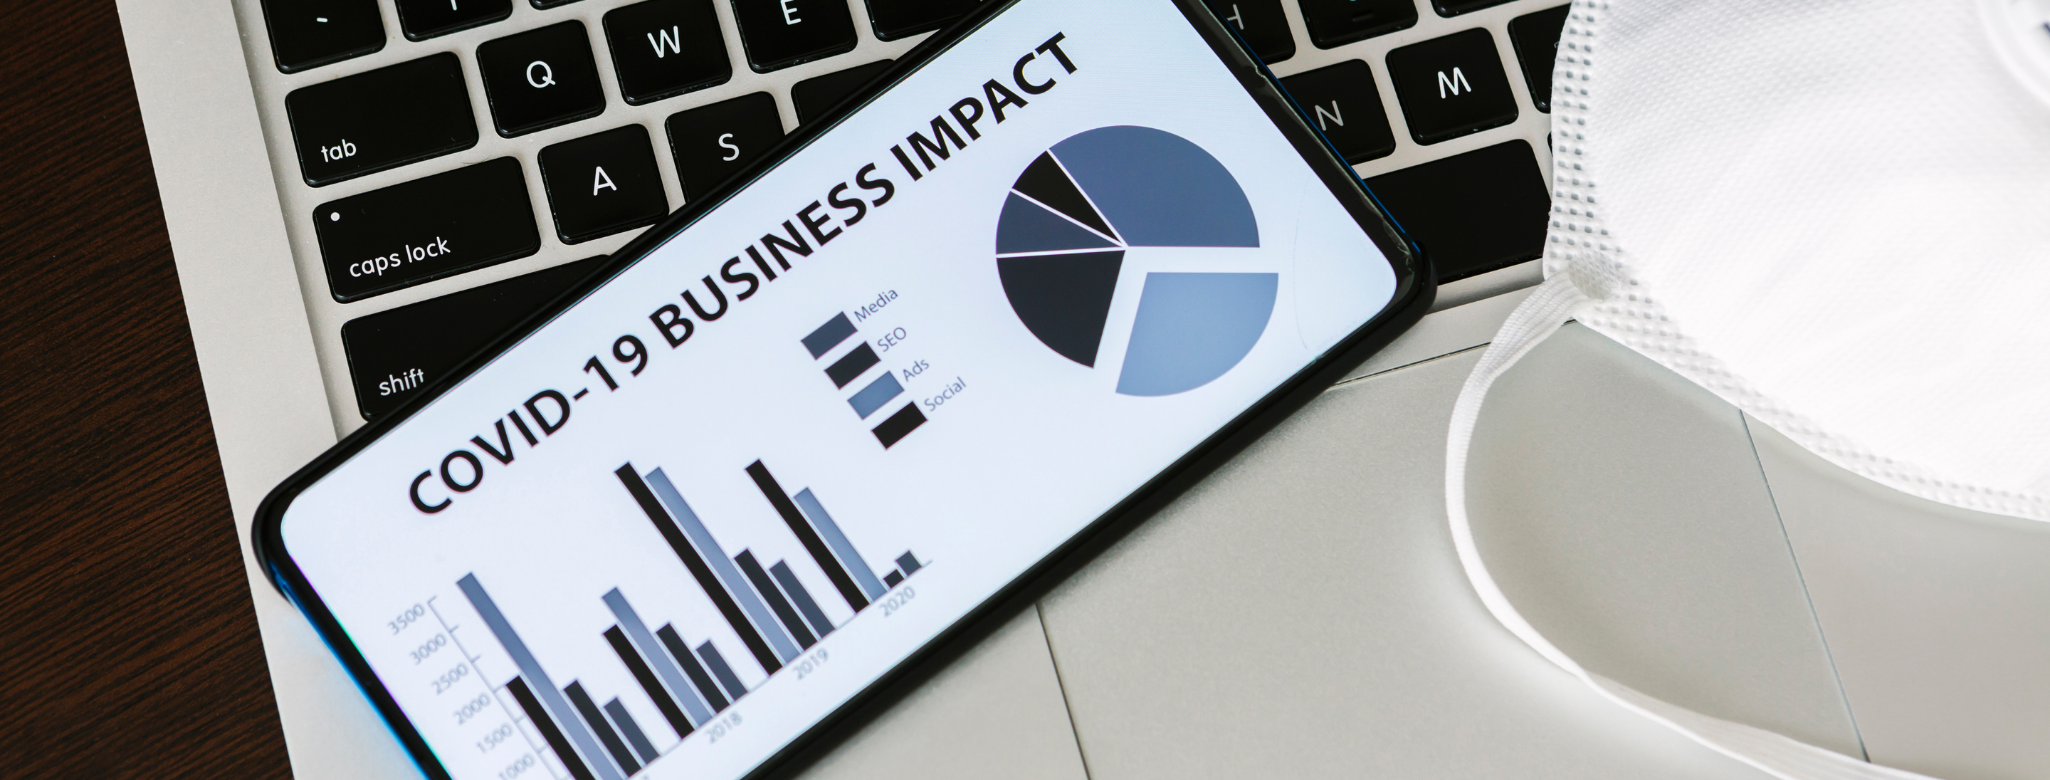 image of computer with business impact statement